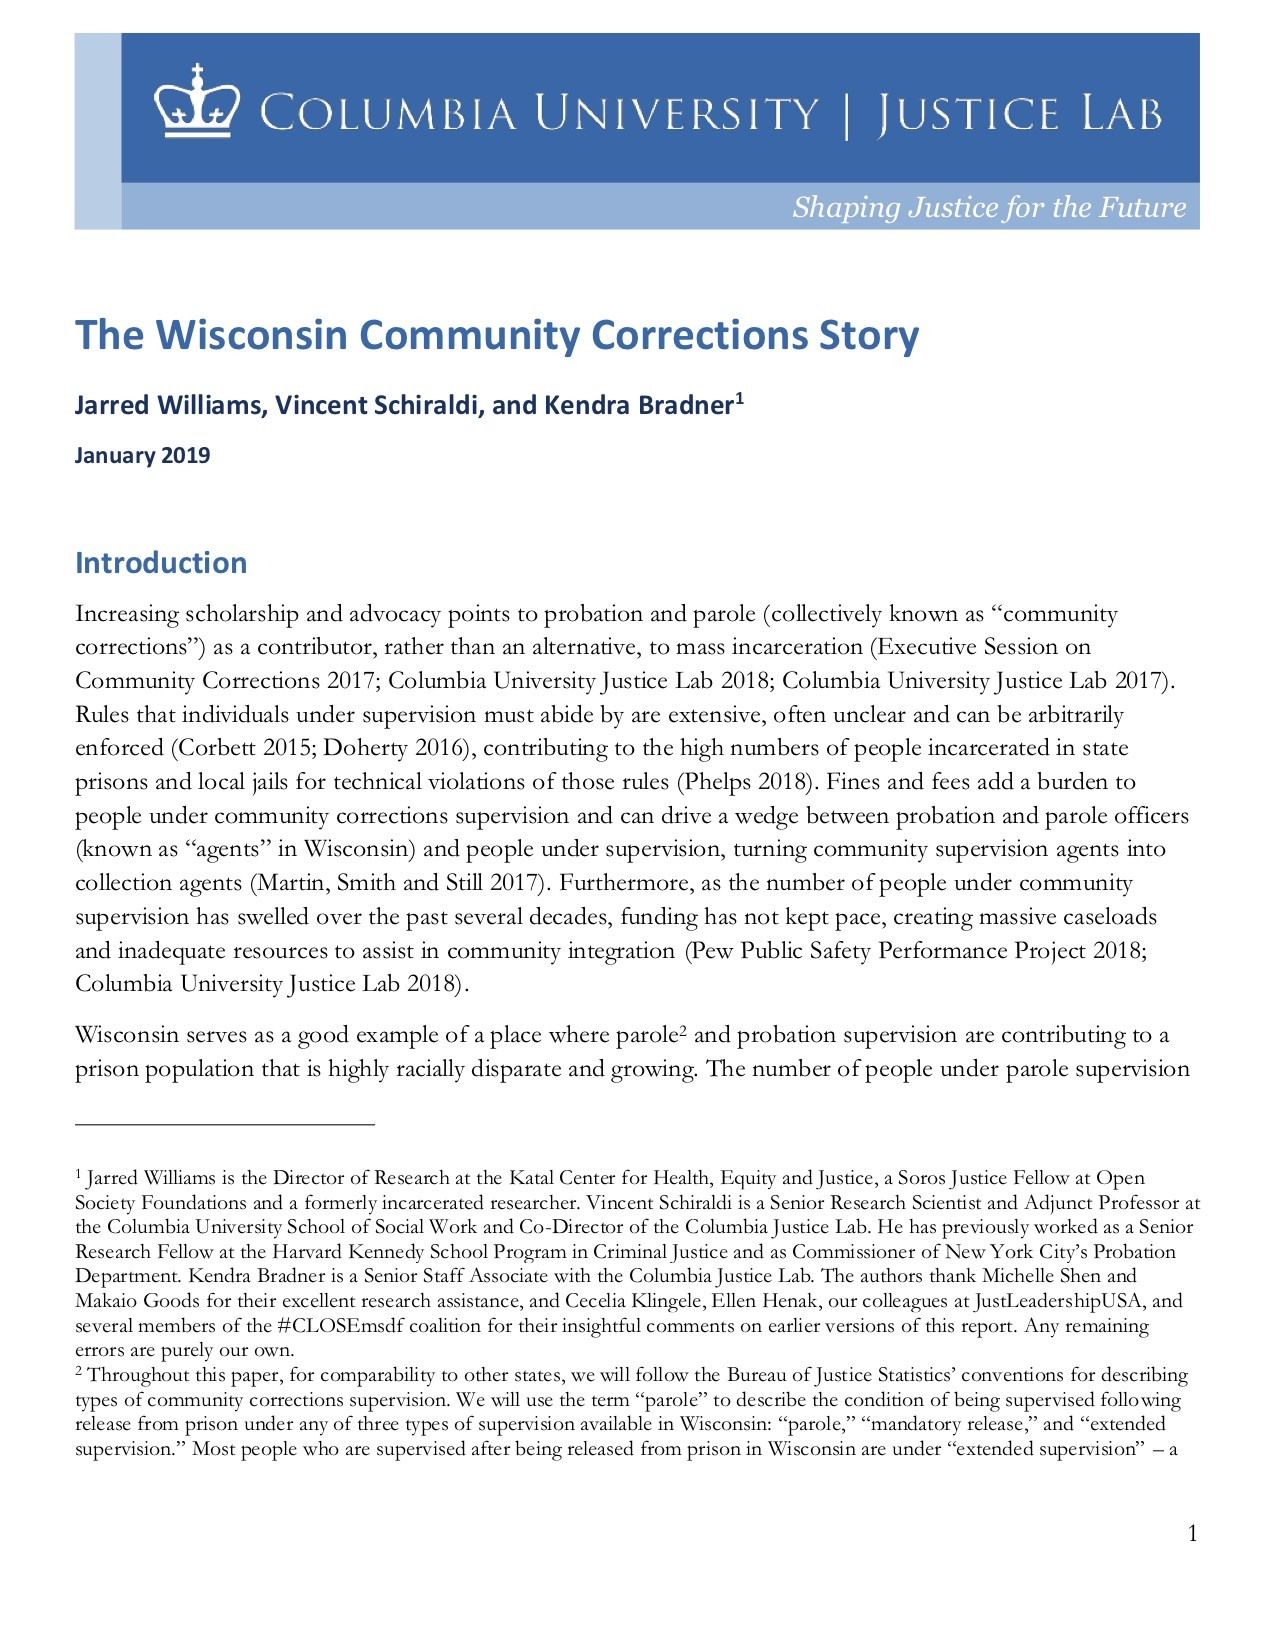 Wisconsin Community Corrections Story